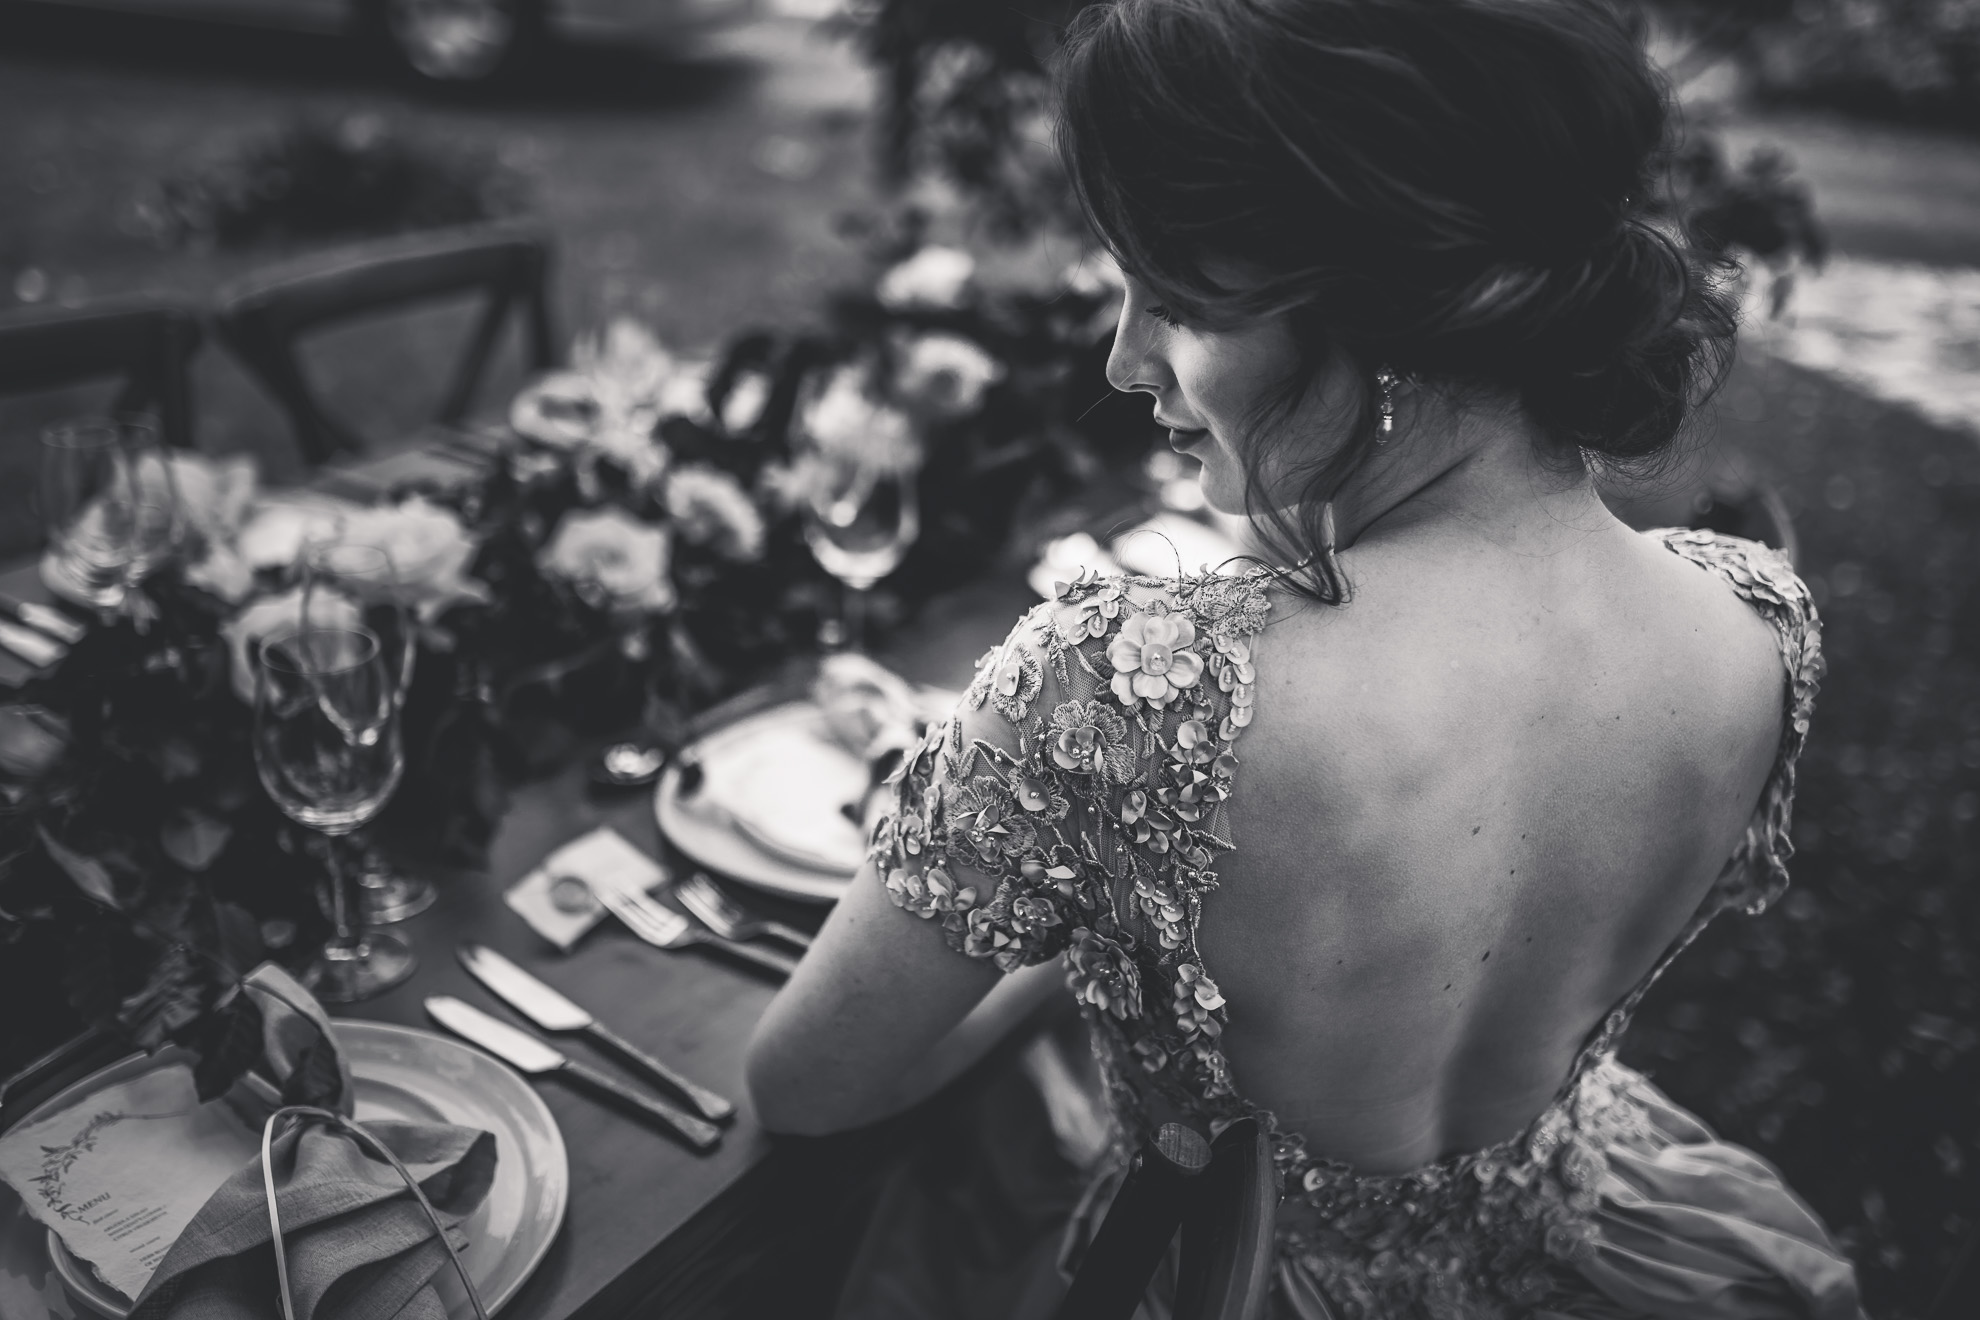 styled-shoot-by-levien-92.JPG